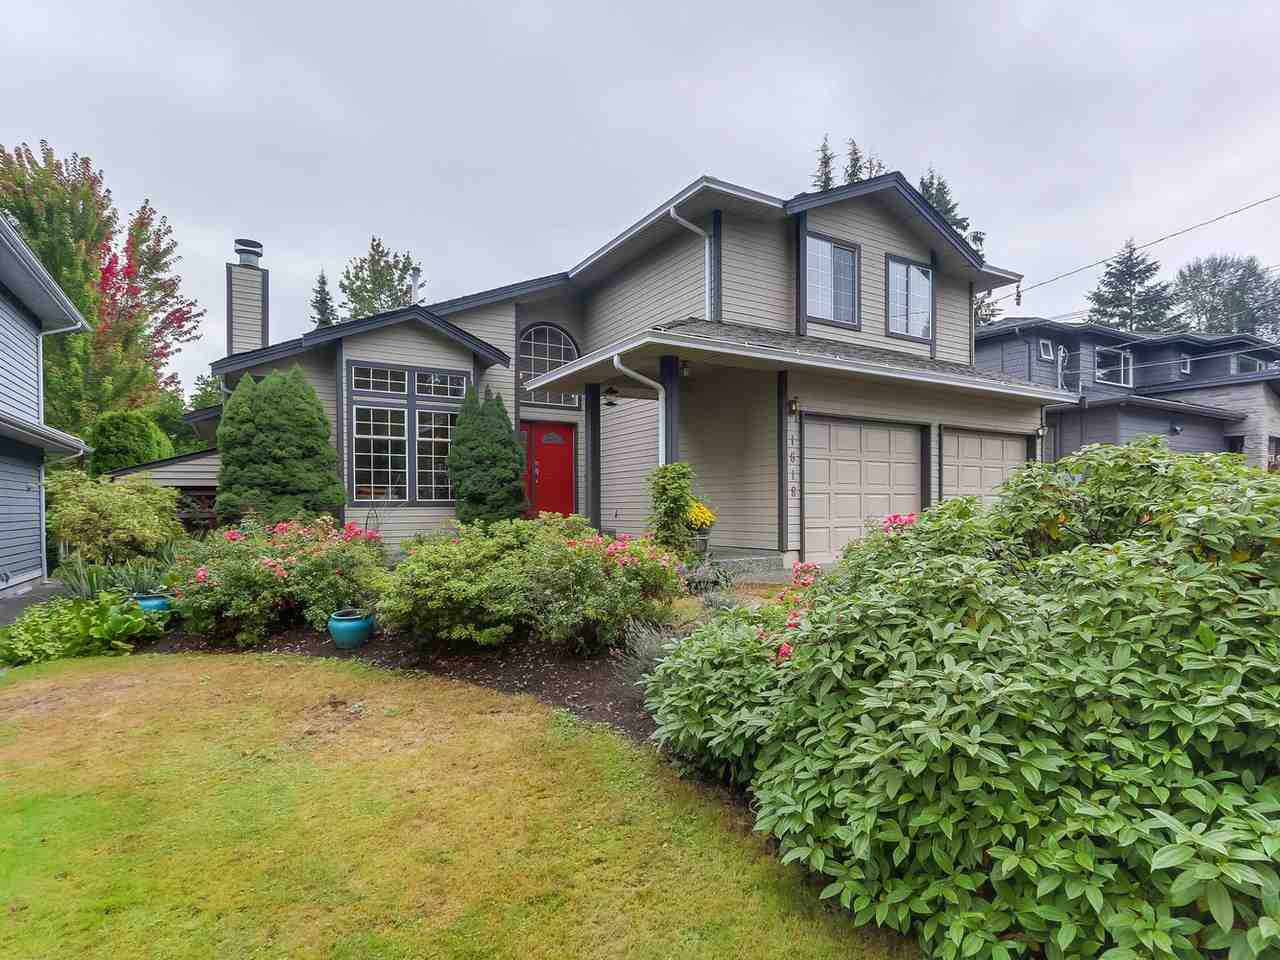 """Main Photo: 1618 DRAYCOTT Road in North Vancouver: Lynn Valley House for sale in """"Lynn Canyon"""" : MLS®# R2307543"""